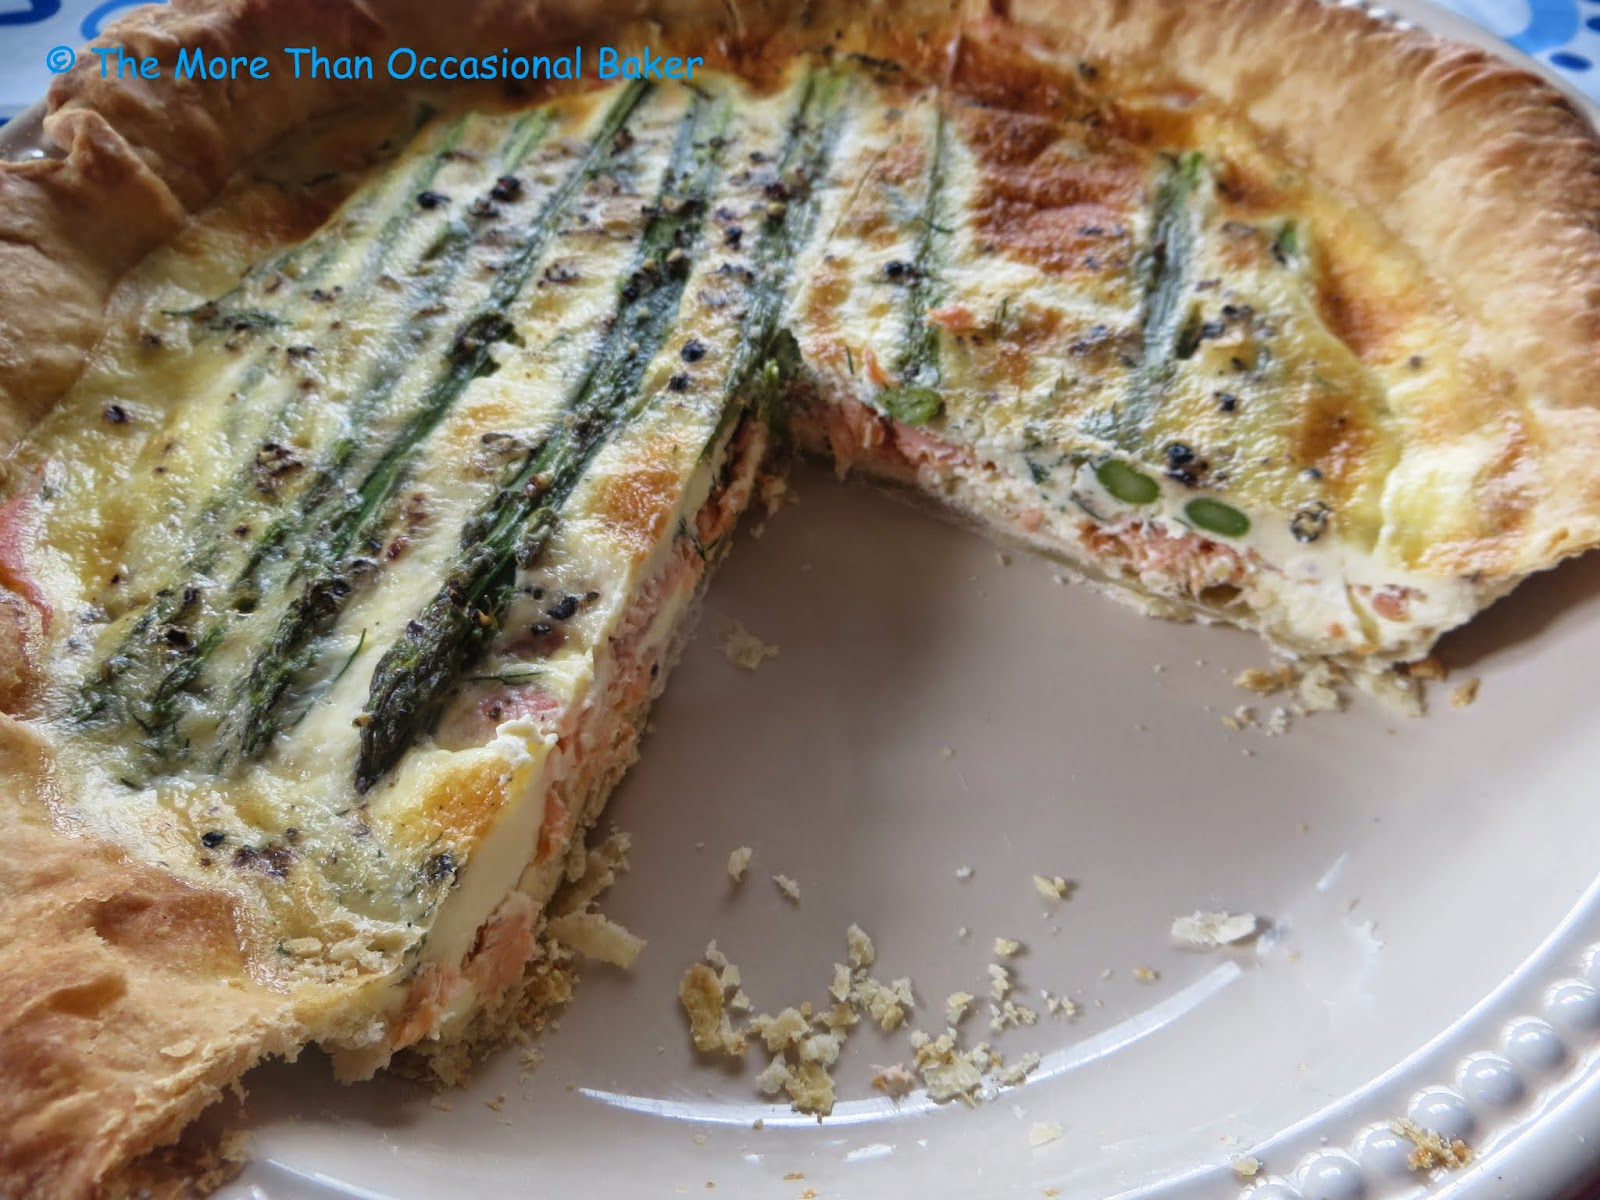 The more than occasional baker smoked salmon and asparagus quiche 1 quantity of shortcrust pastry i used the recipe from bbc good food few slices of smoked salmon 9 asparagus stalks trimmed and cooked fresh dill forumfinder Gallery